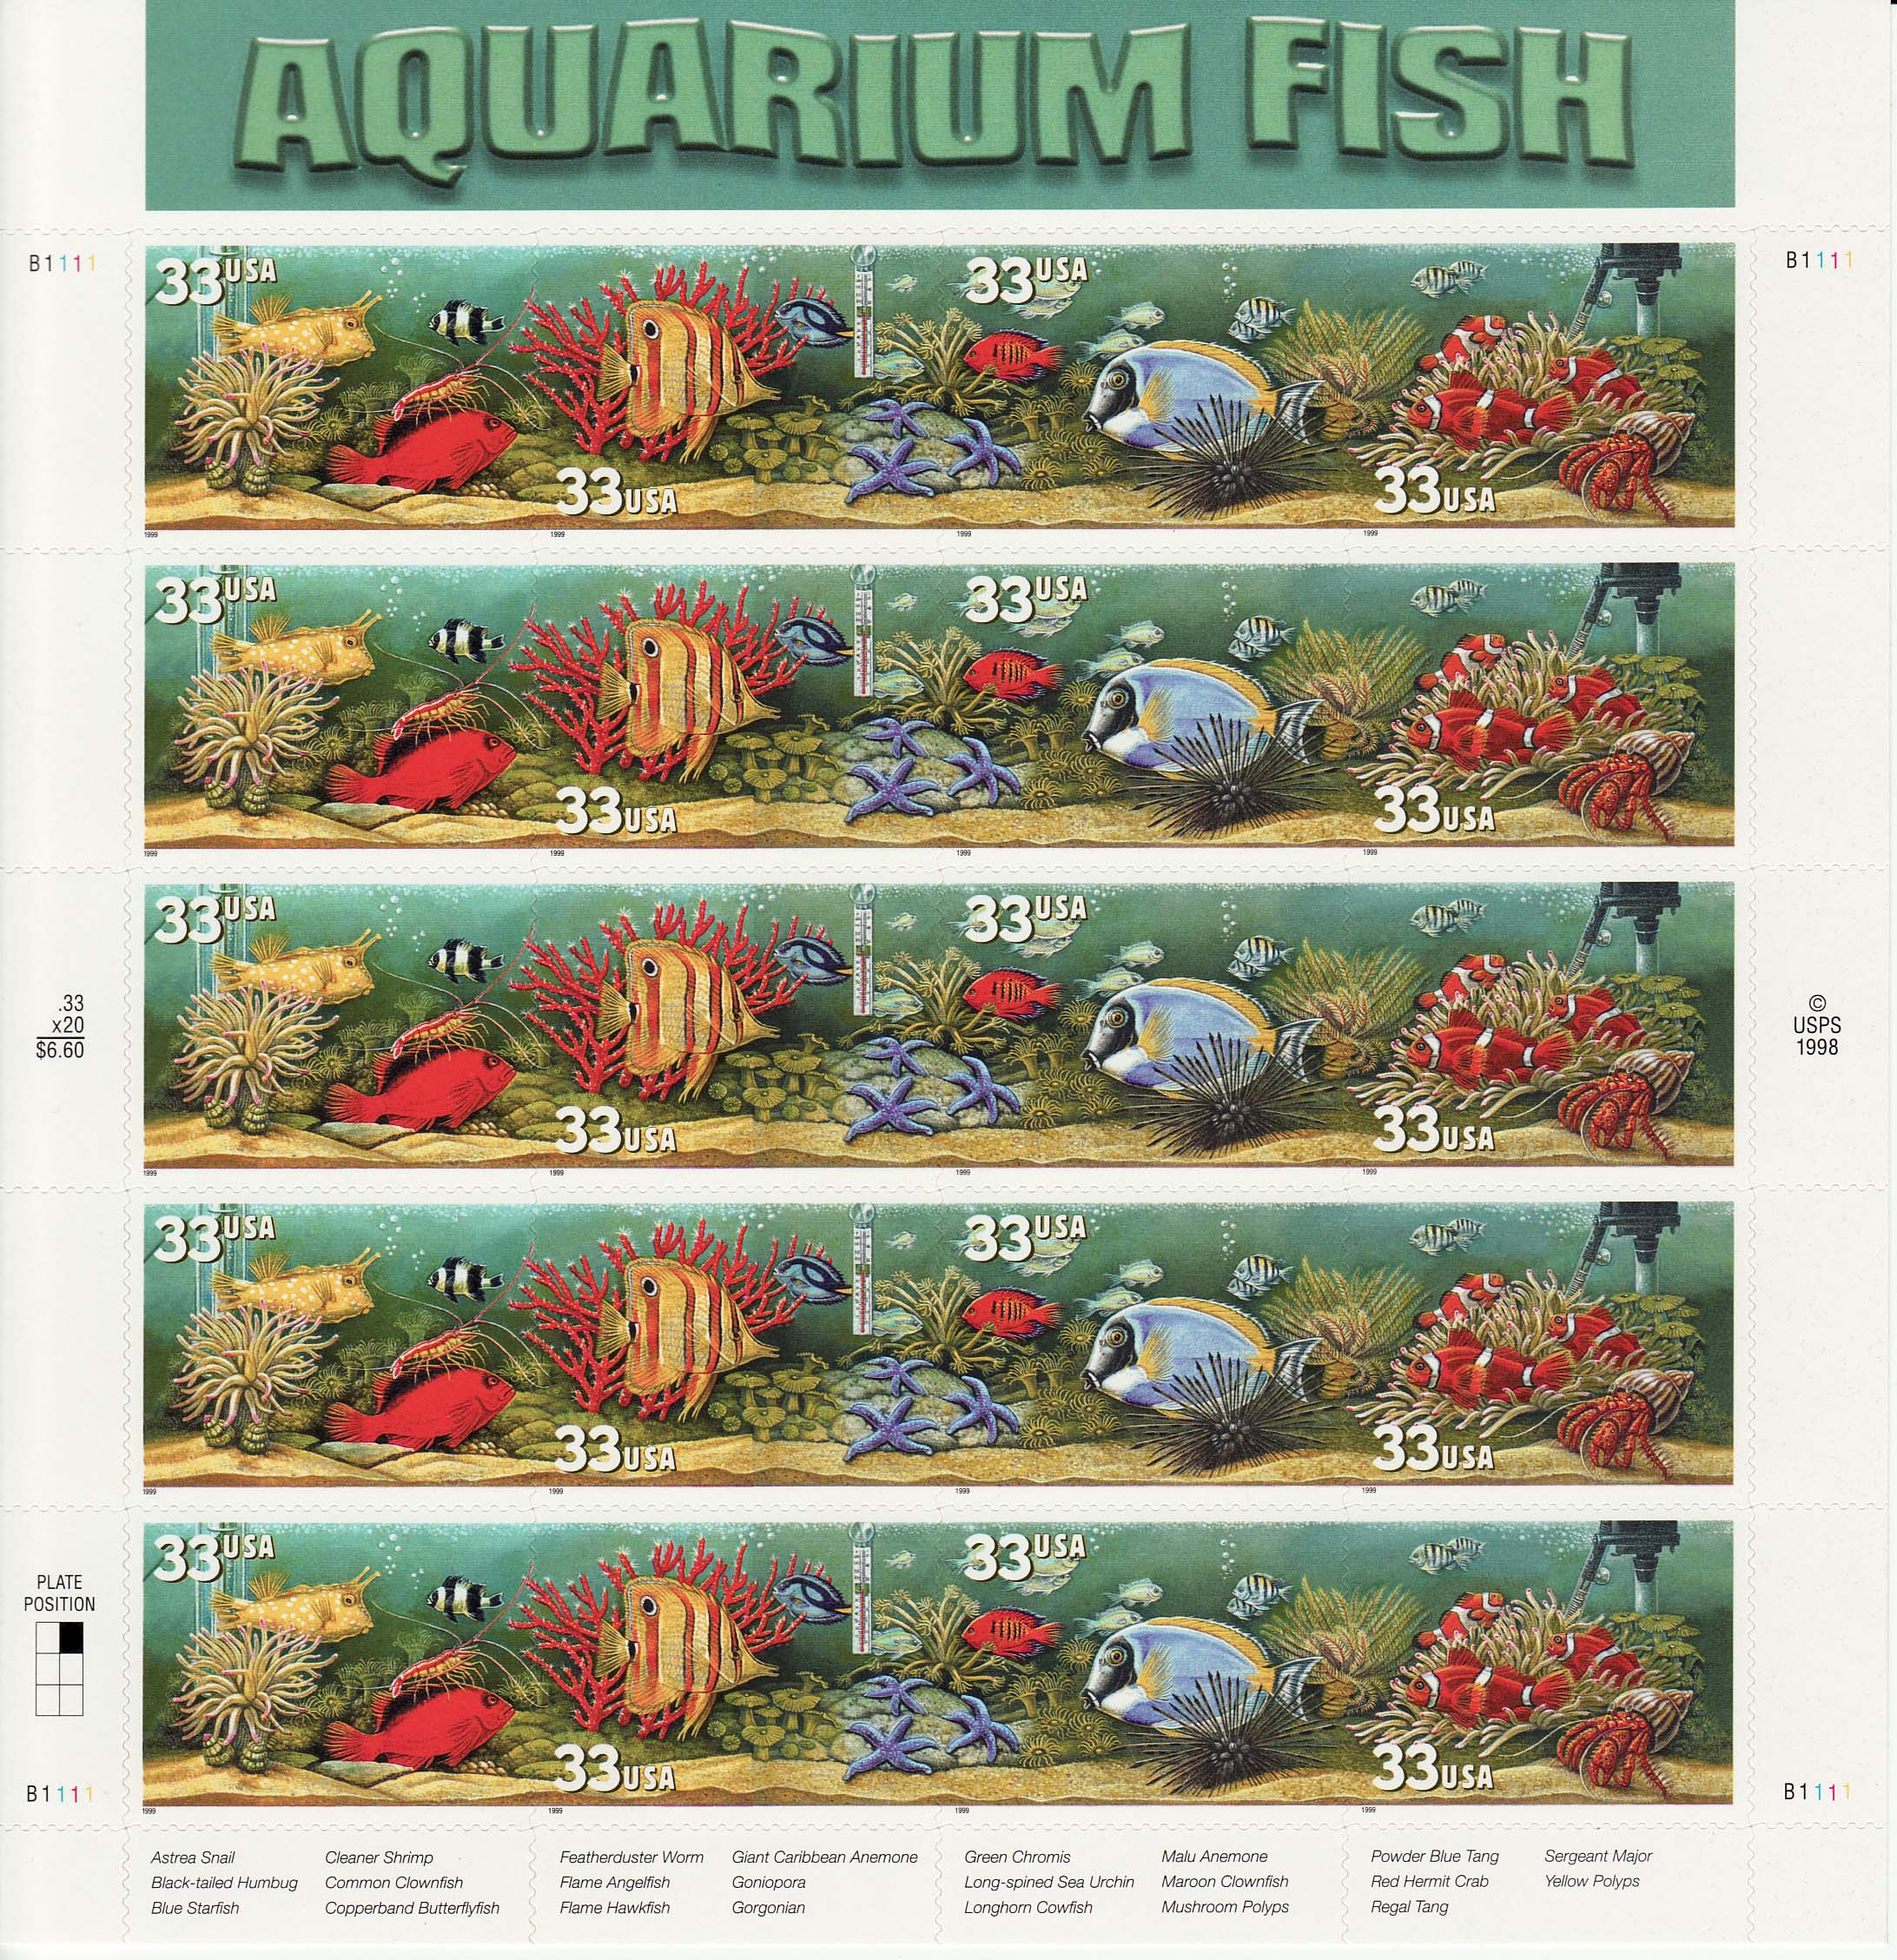 Aquarium Fish stamp sheet